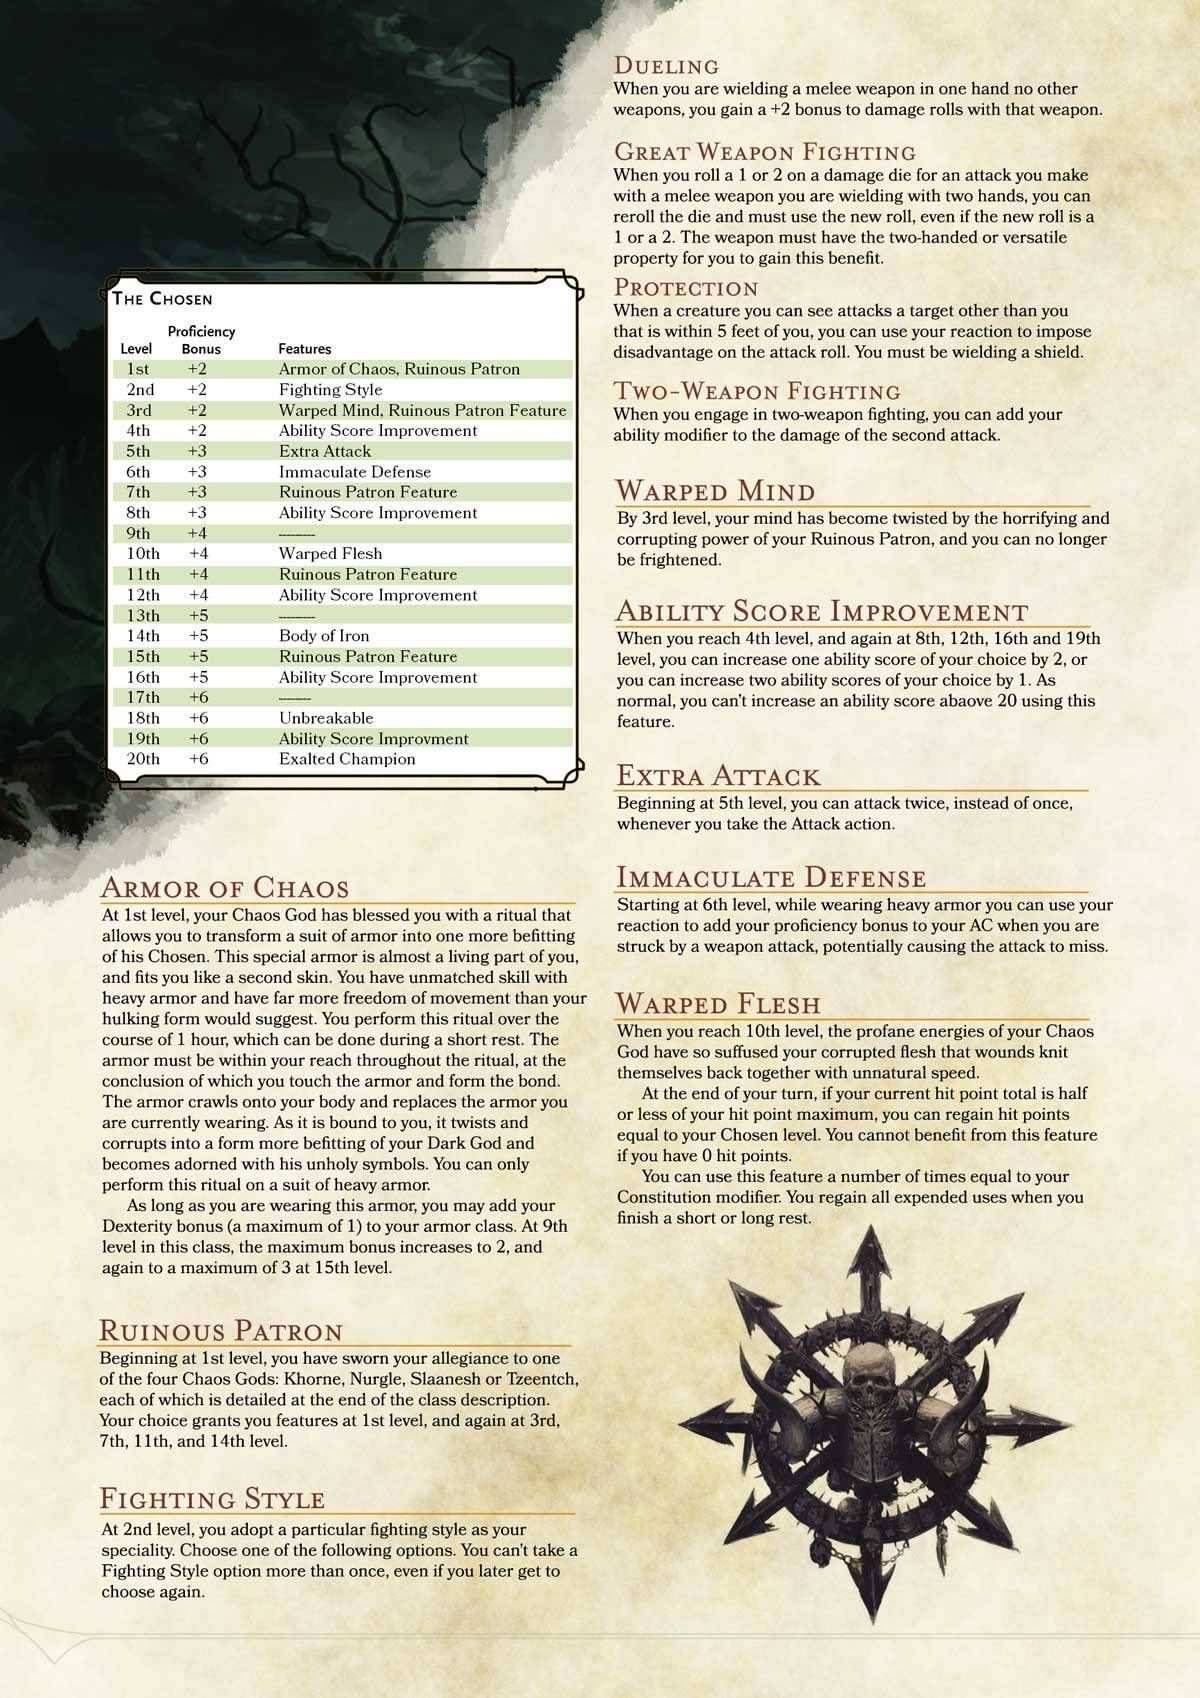 Pin by KingofKings on D&d creatures | Dnd 5e homebrew, Dnd classes